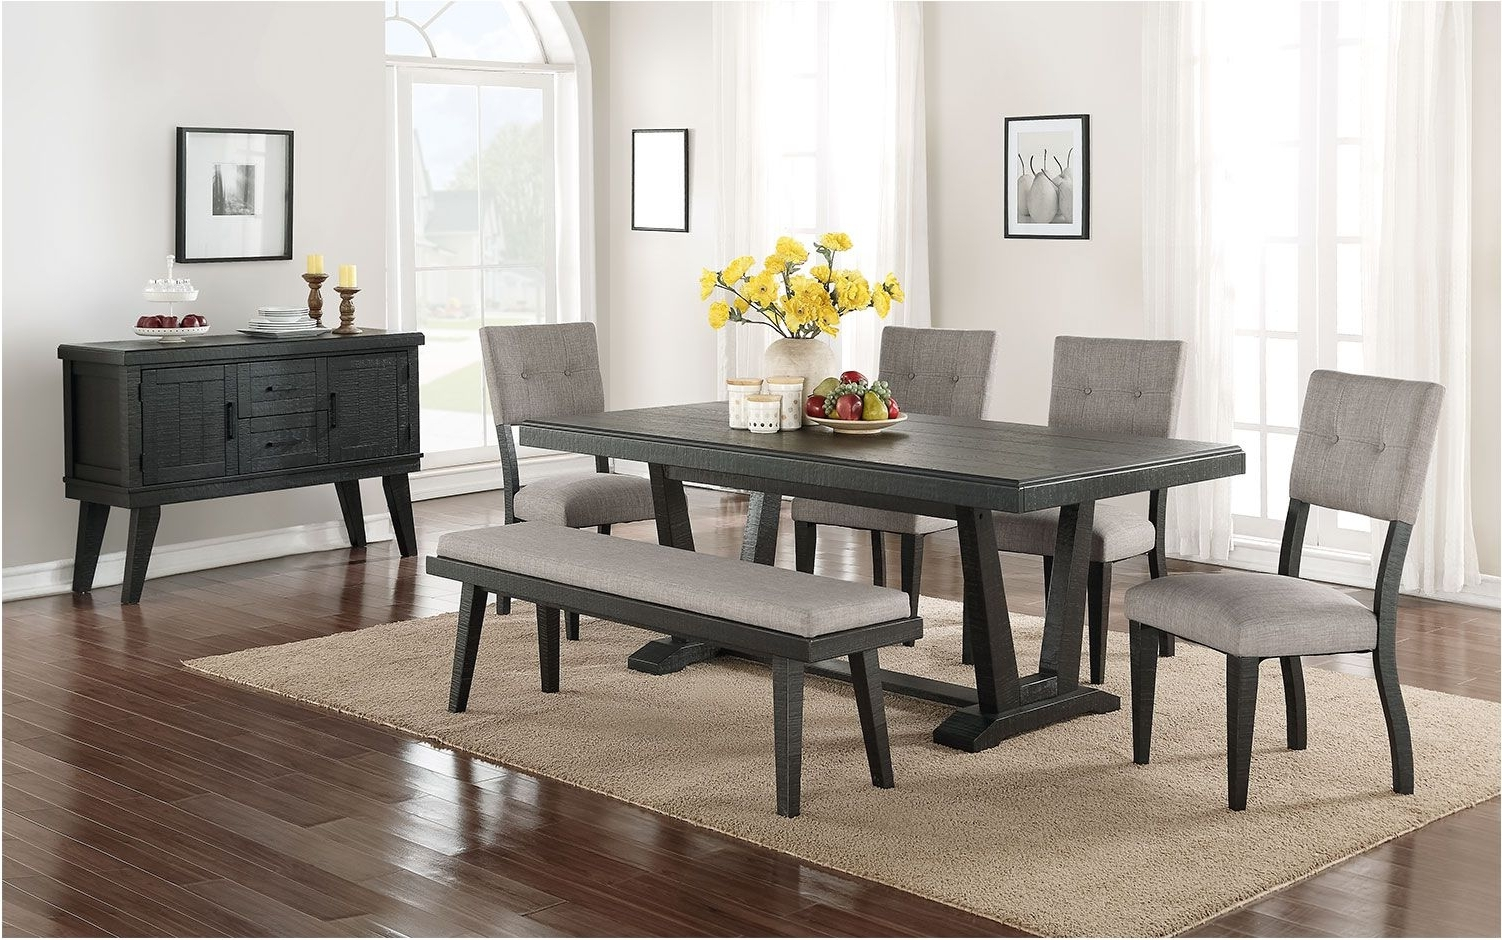 Latest Stunning 6 Piece Dining Room Set Black And Grey Leon – Dining Room With Leon 7 Piece Dining Sets (View 7 of 25)